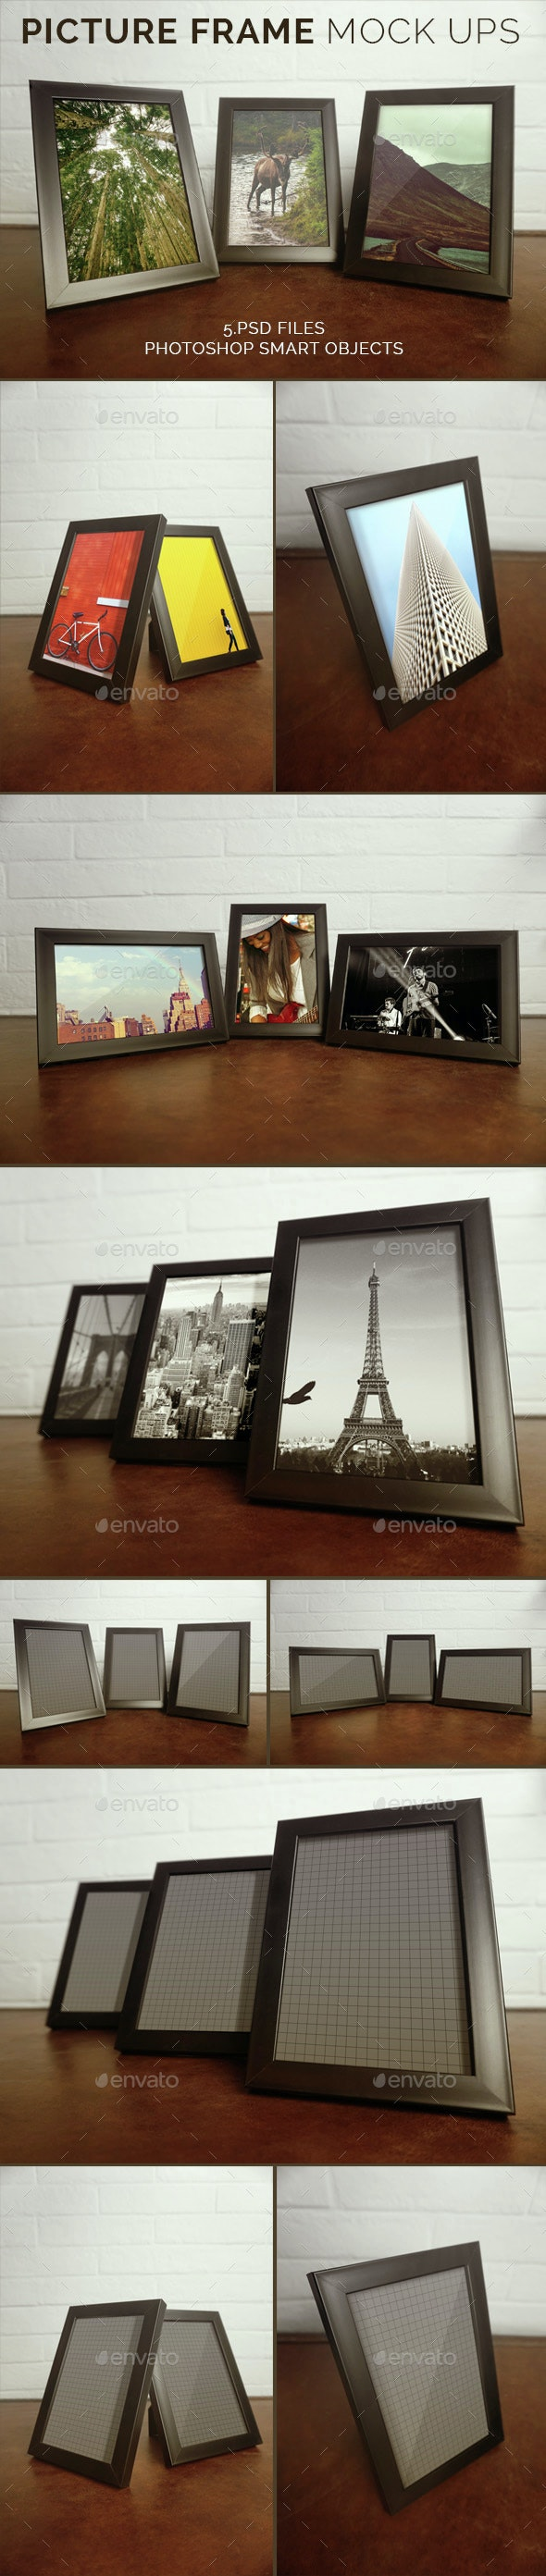 Picture Frame Mock Ups - Product Mock-Ups Graphics